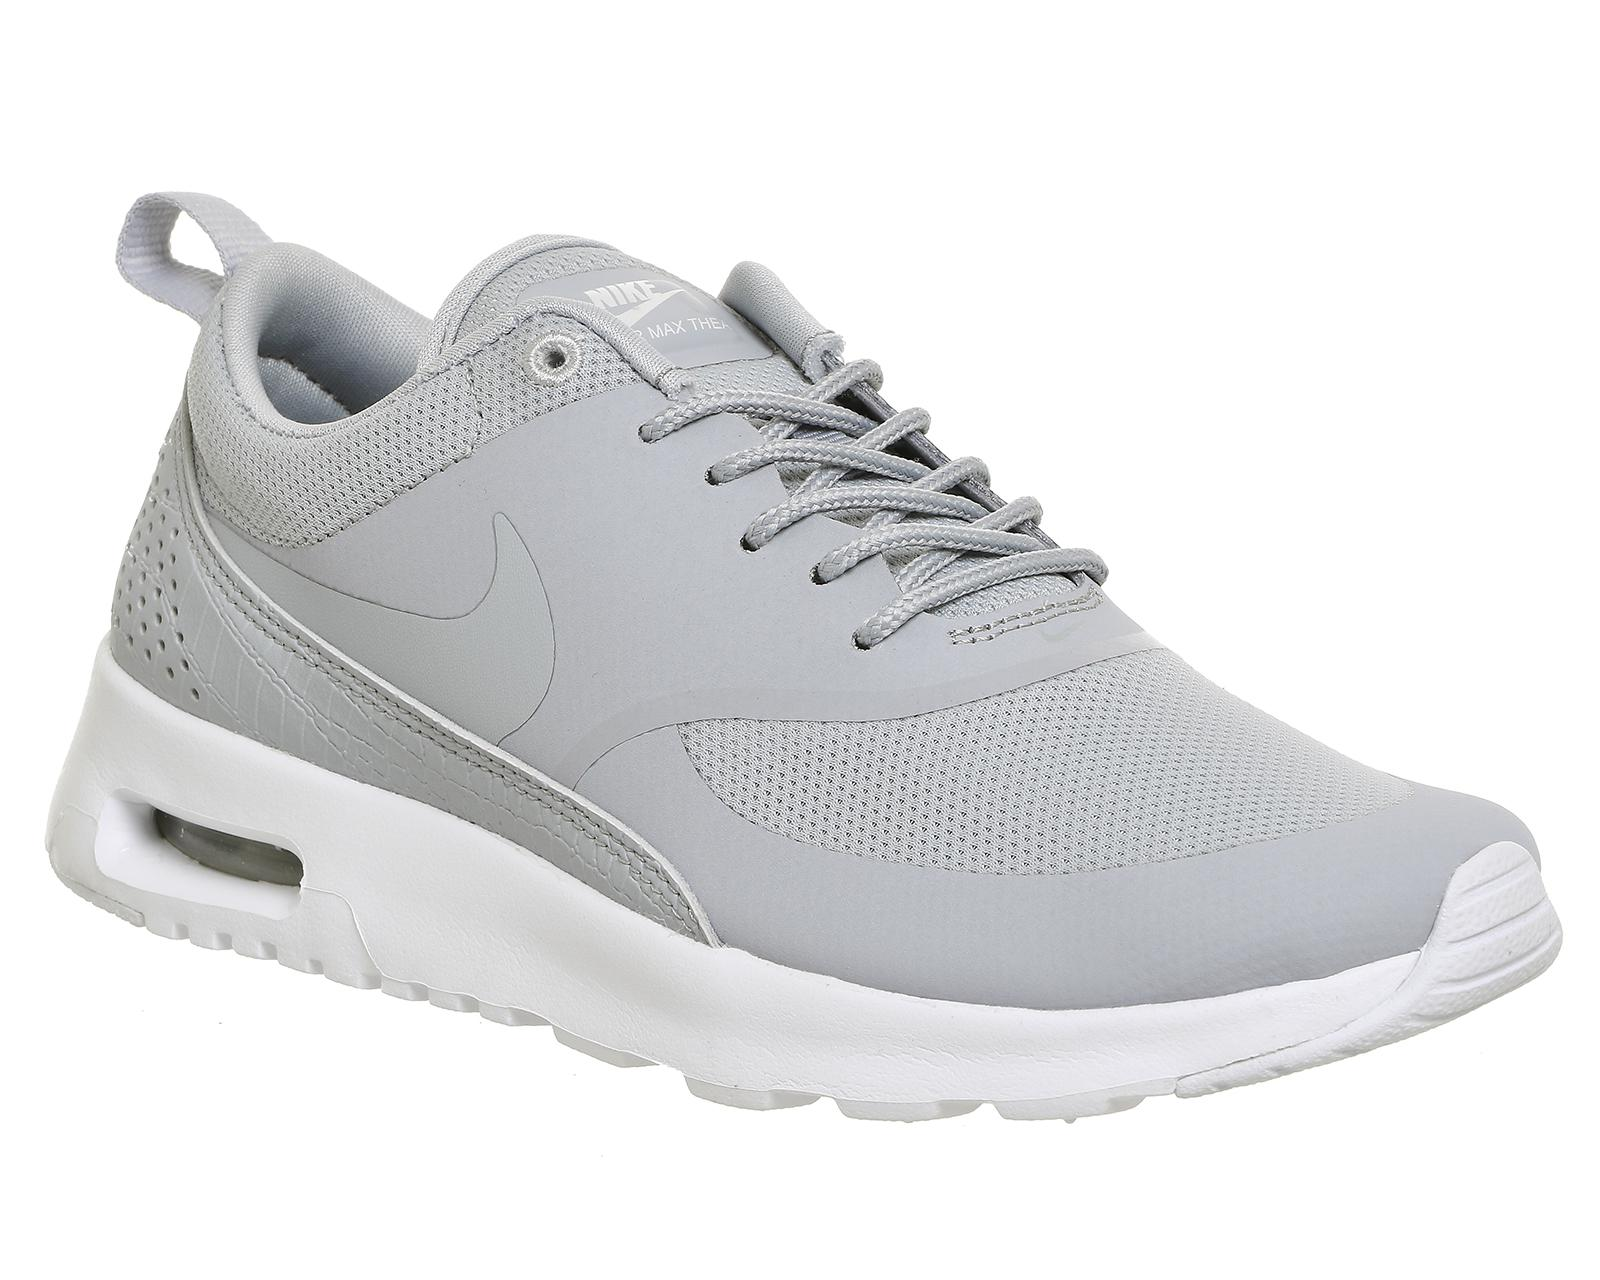 Nike Synthetic Air Max Thea Trainers in